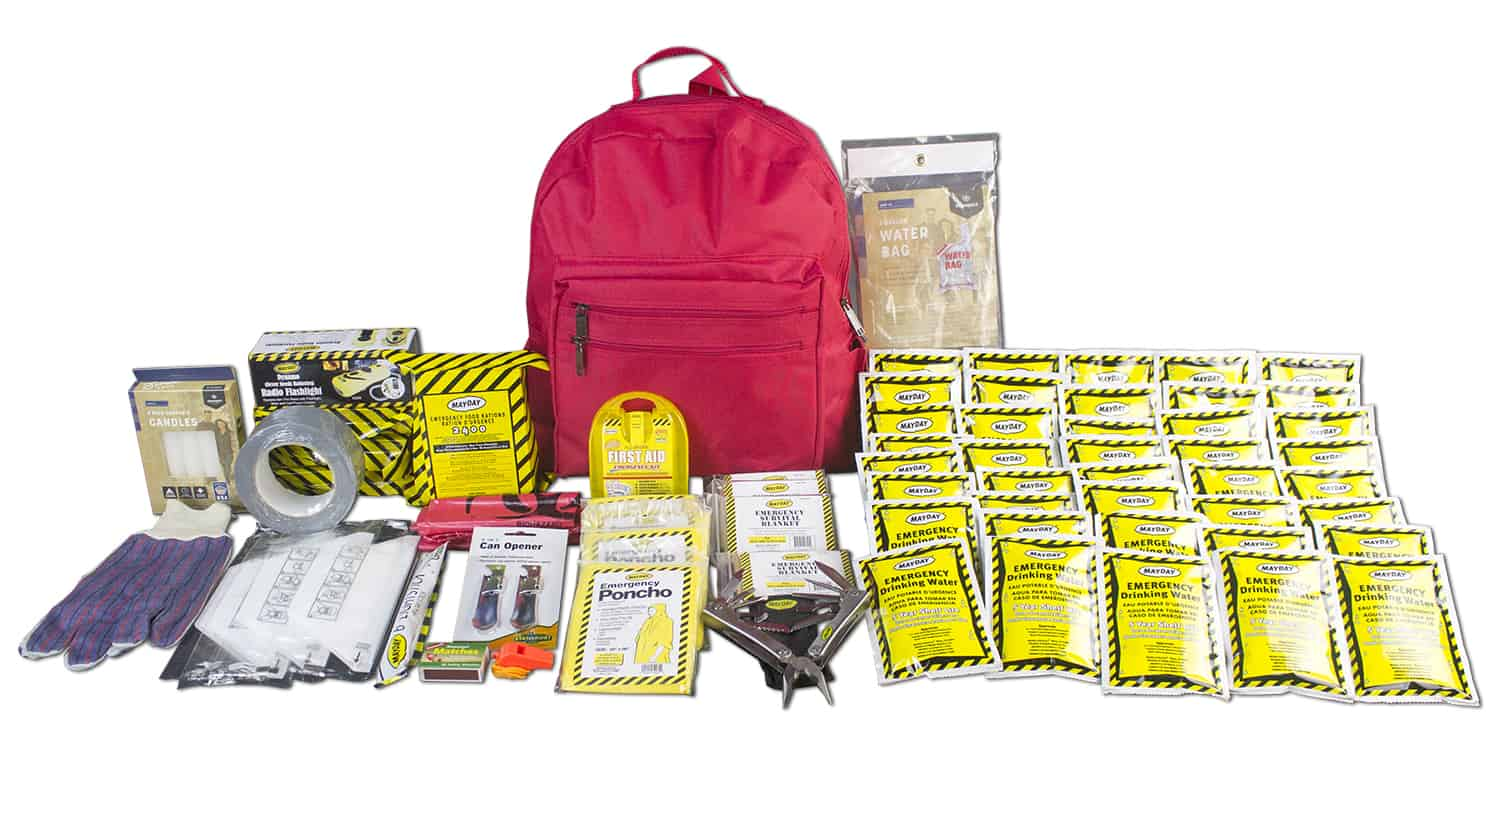 Deluxe 72 Hour Emergency Survival Kit - 4 Person